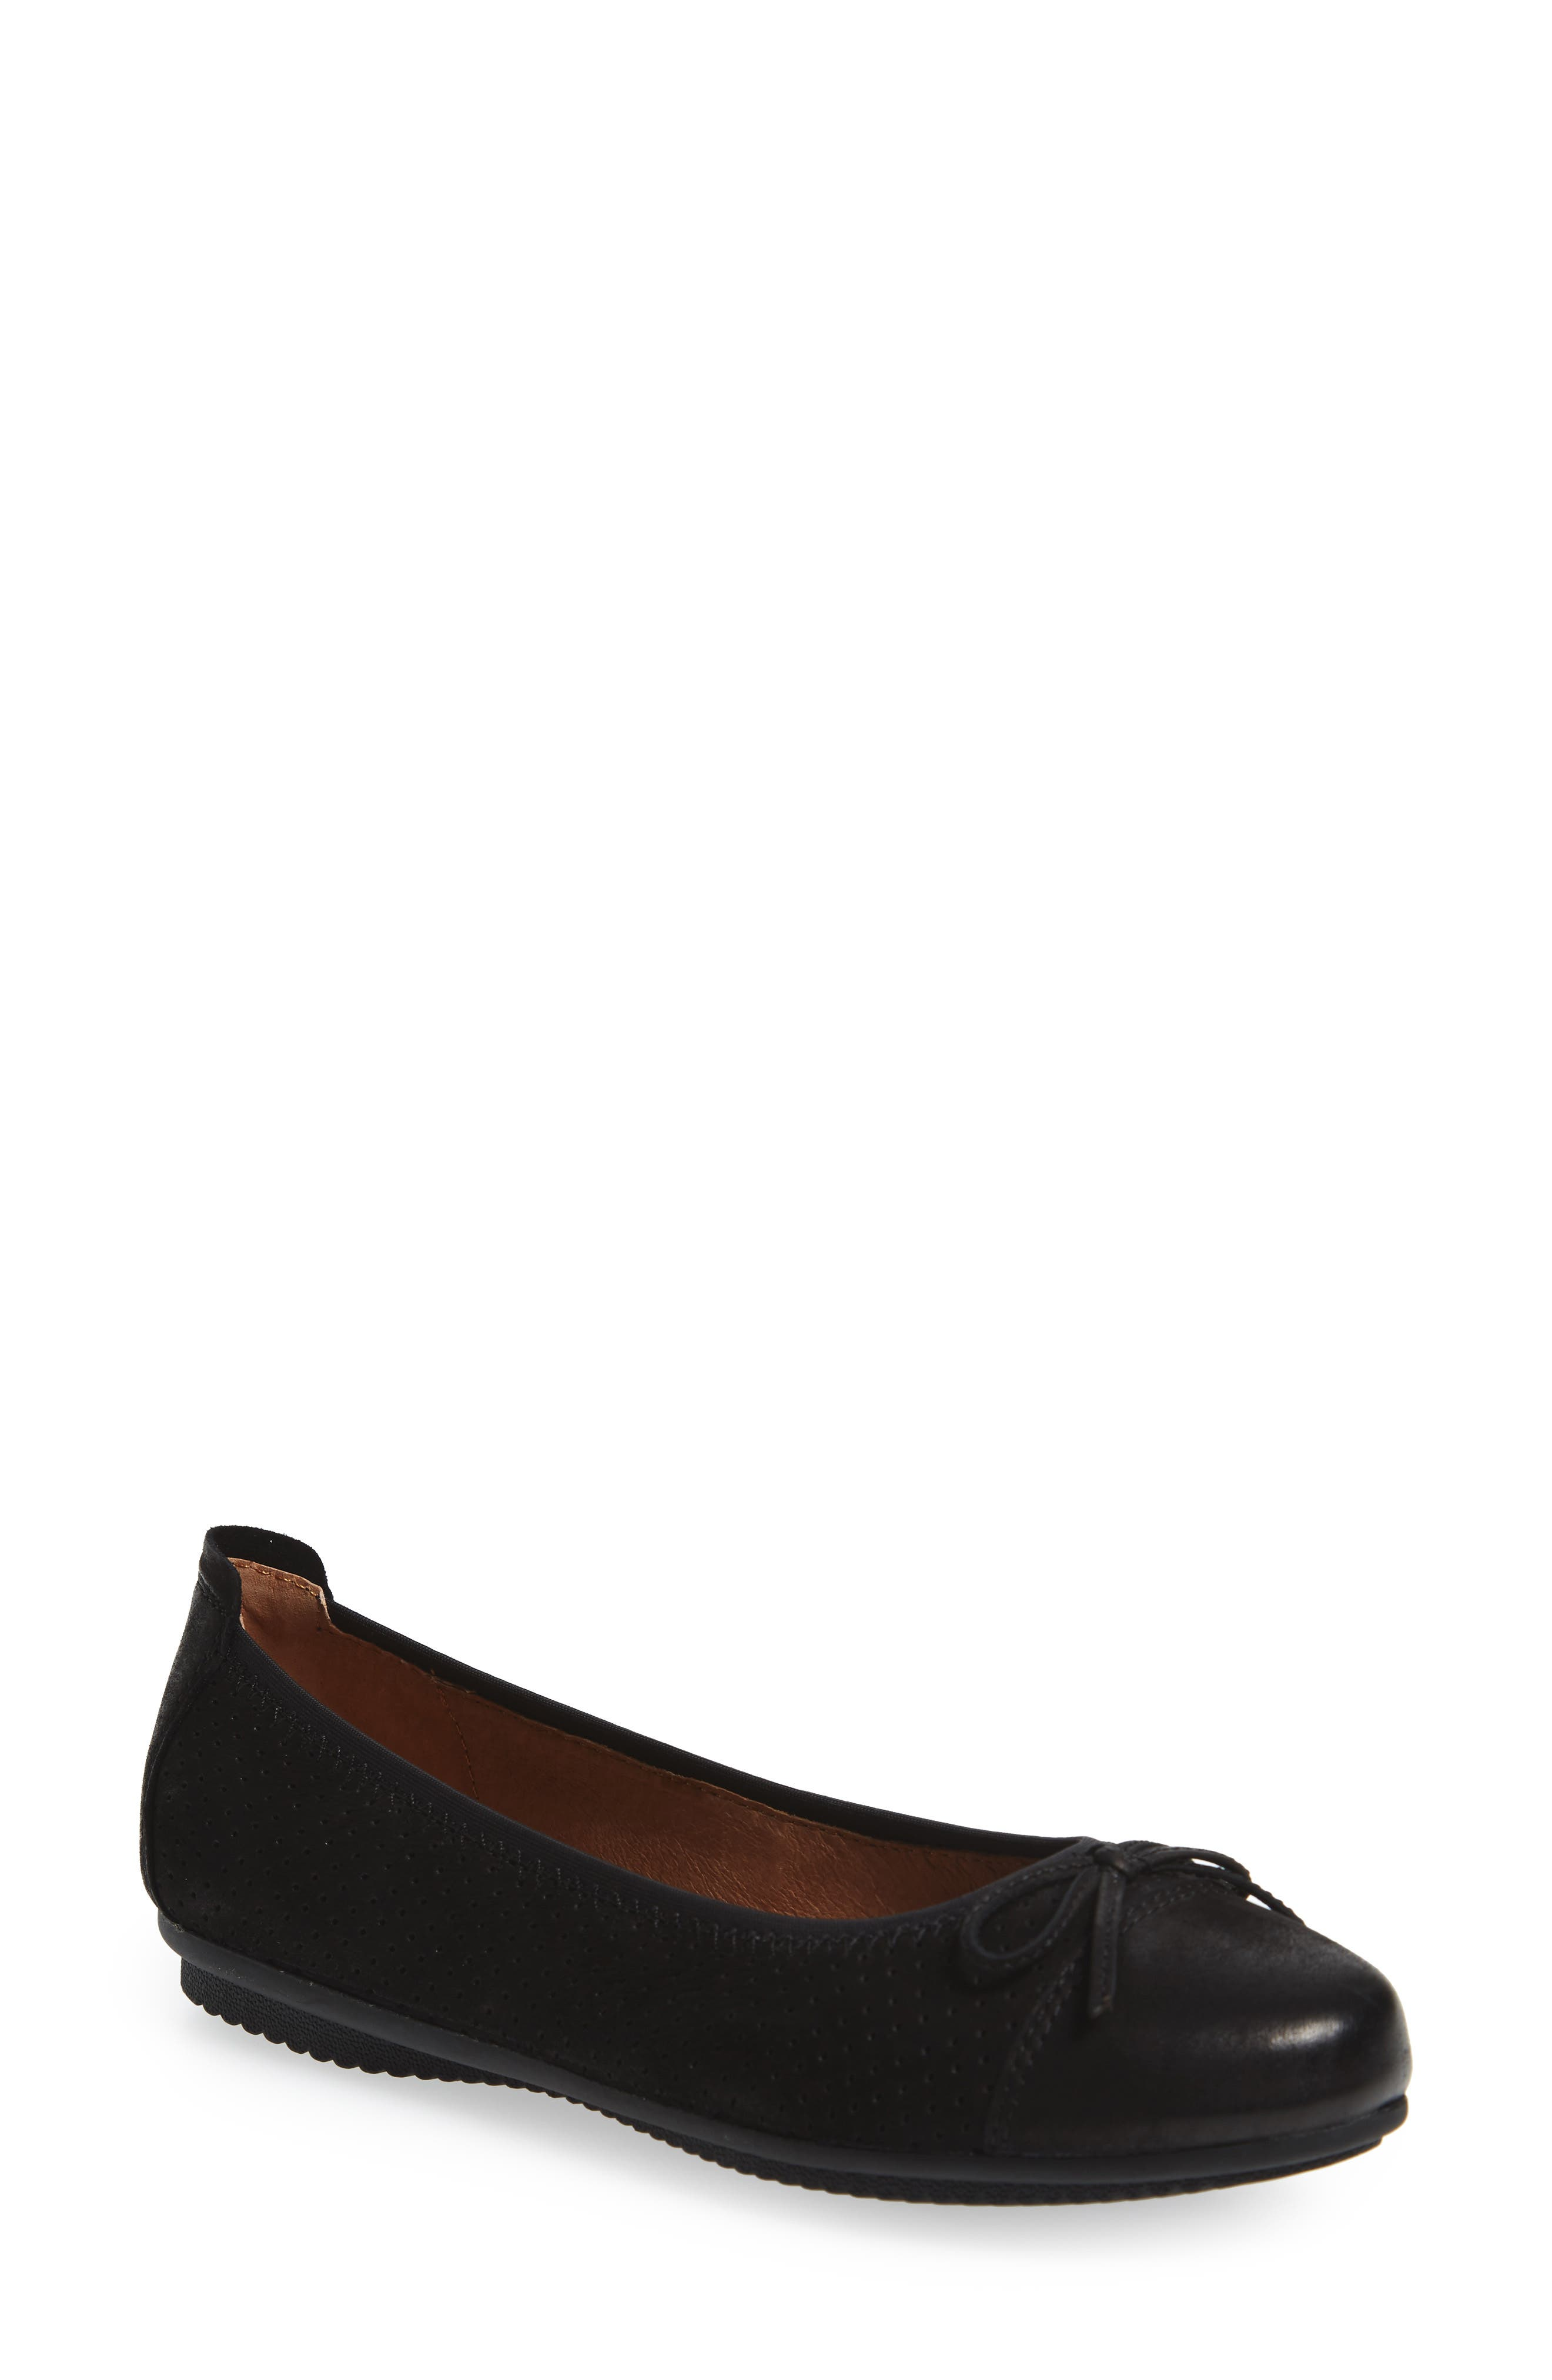 Pippa 25 Flat,                         Main,                         color, 003